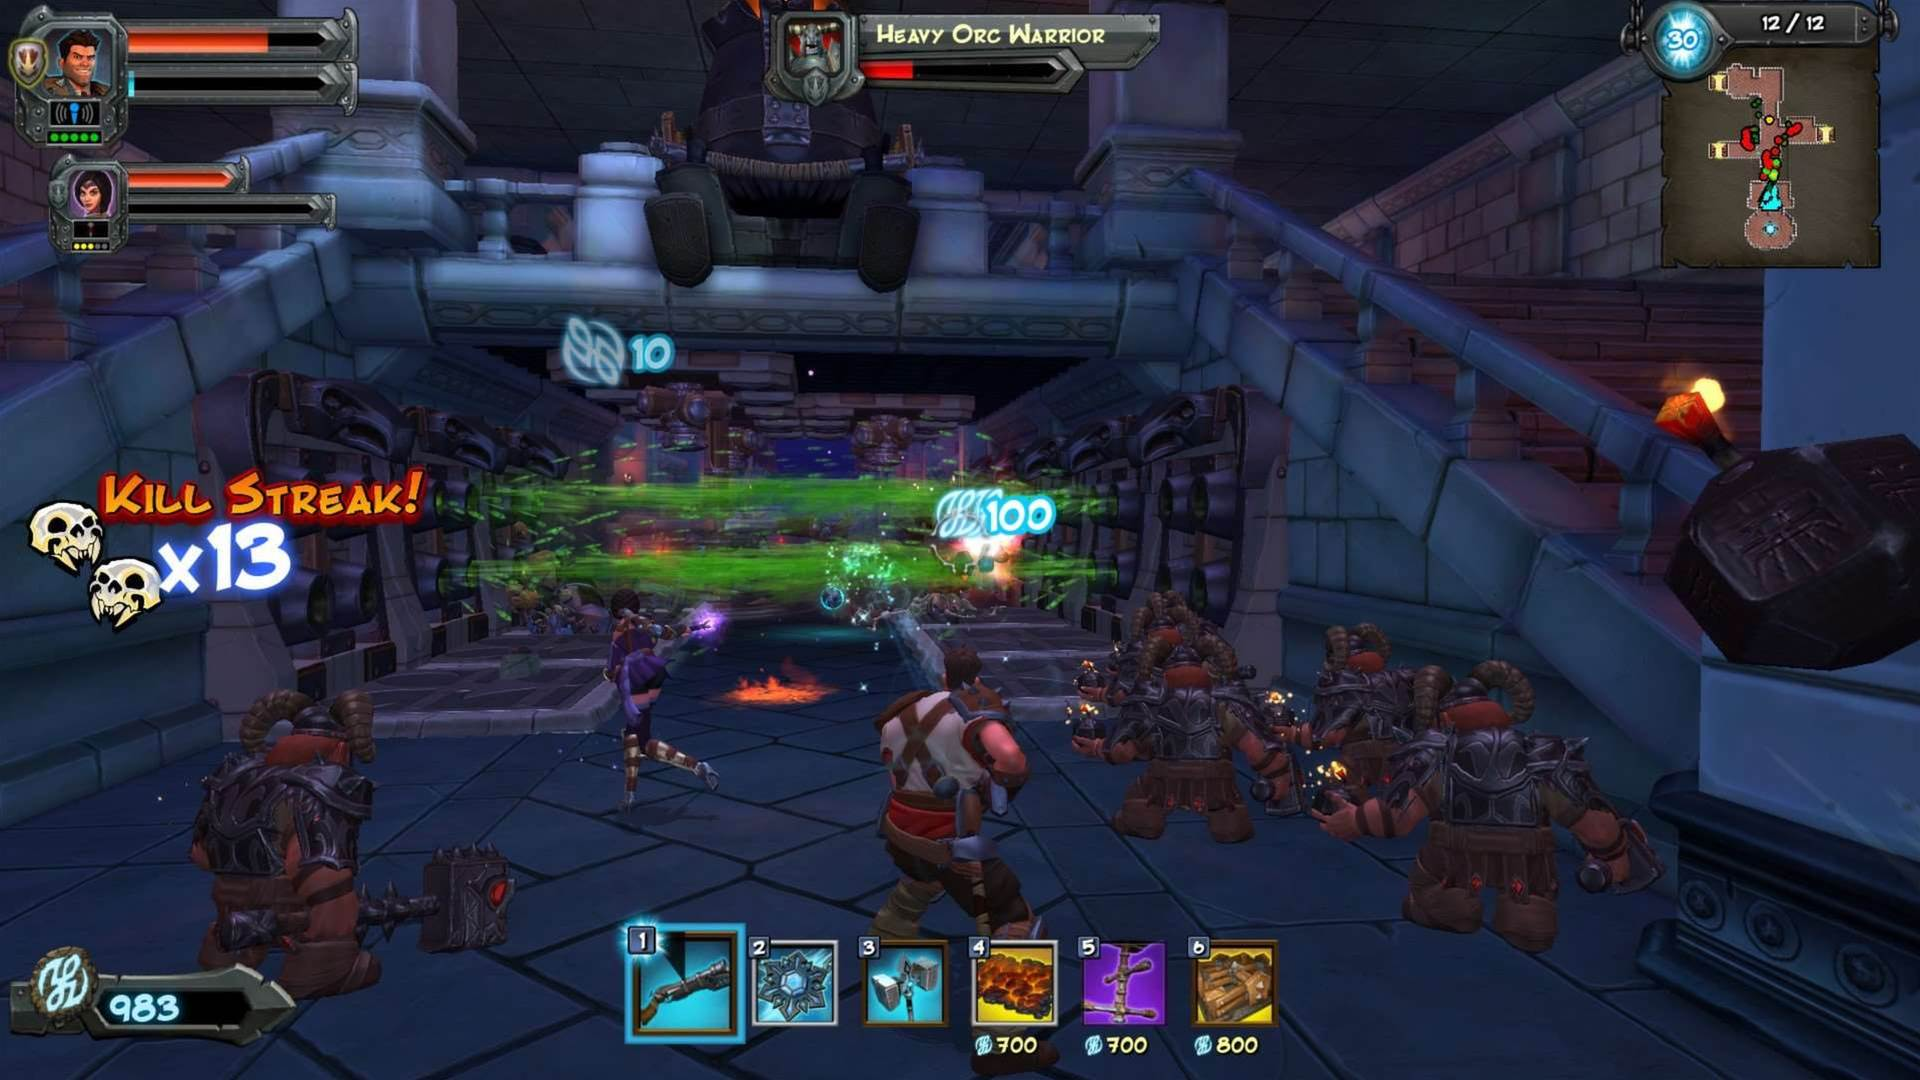 Review: Orcs Must Die 2